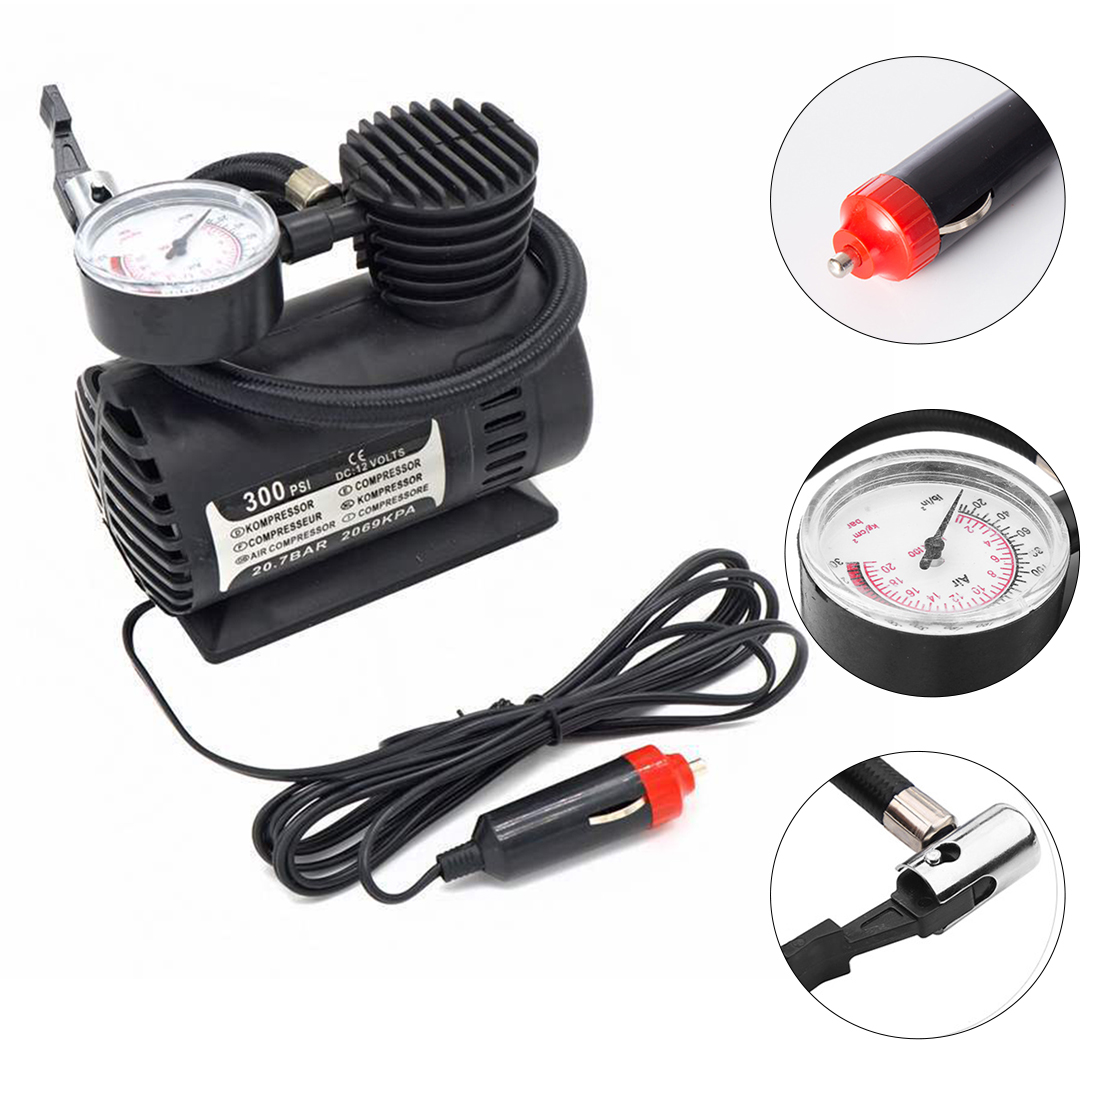 <font><b>300</b></font> <font><b>PSI</b></font> Car Tire Inflator Auto Air Compressor Portable Digital Tire <font><b>Pump</b></font> with Pressure Gauge for Car Bicycle Ball Rubber Dinghy image